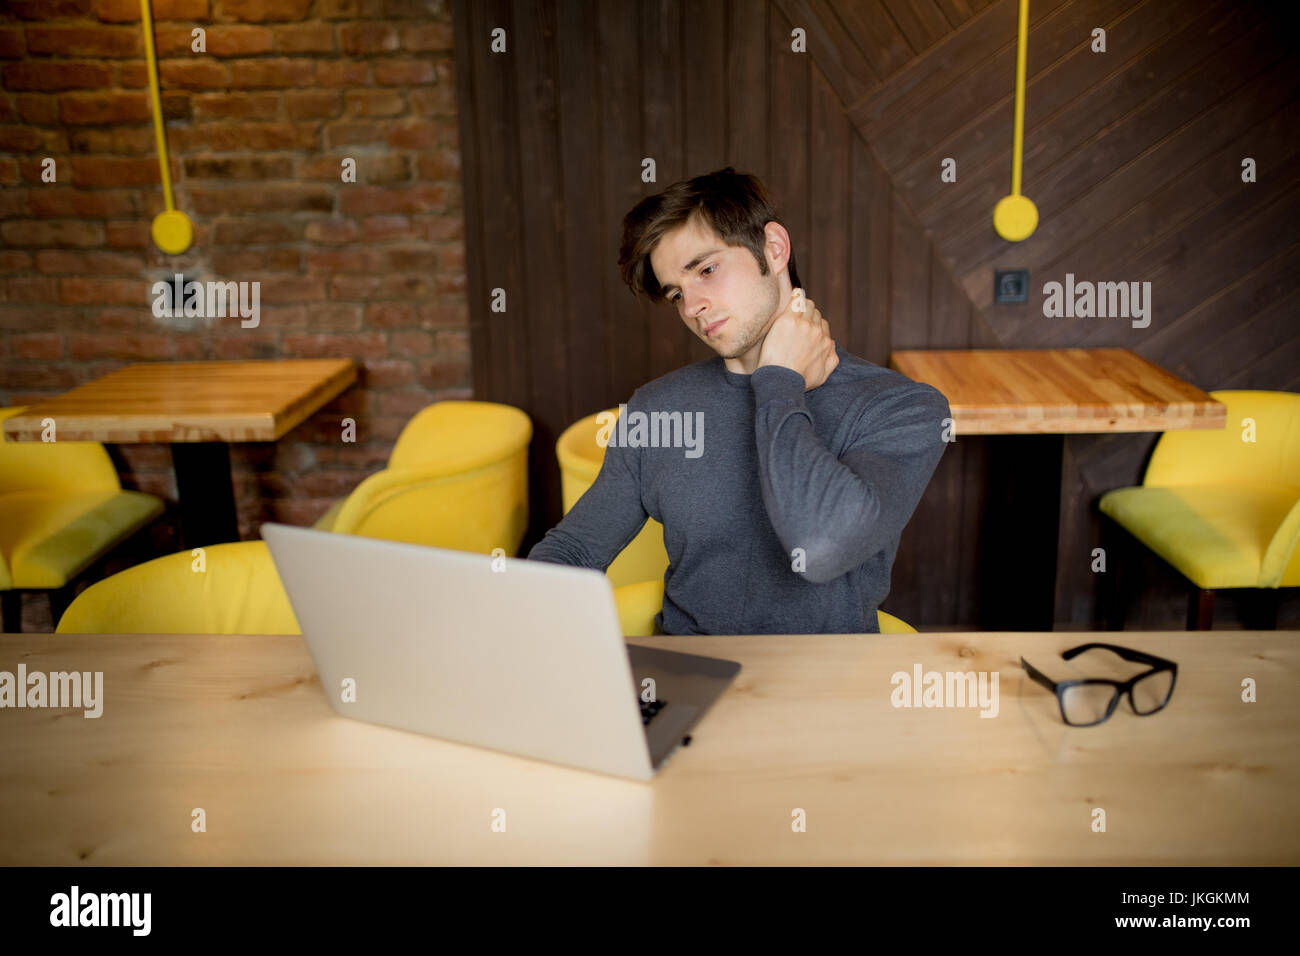 Handsome man suffering from neck pain in office - Stock Image